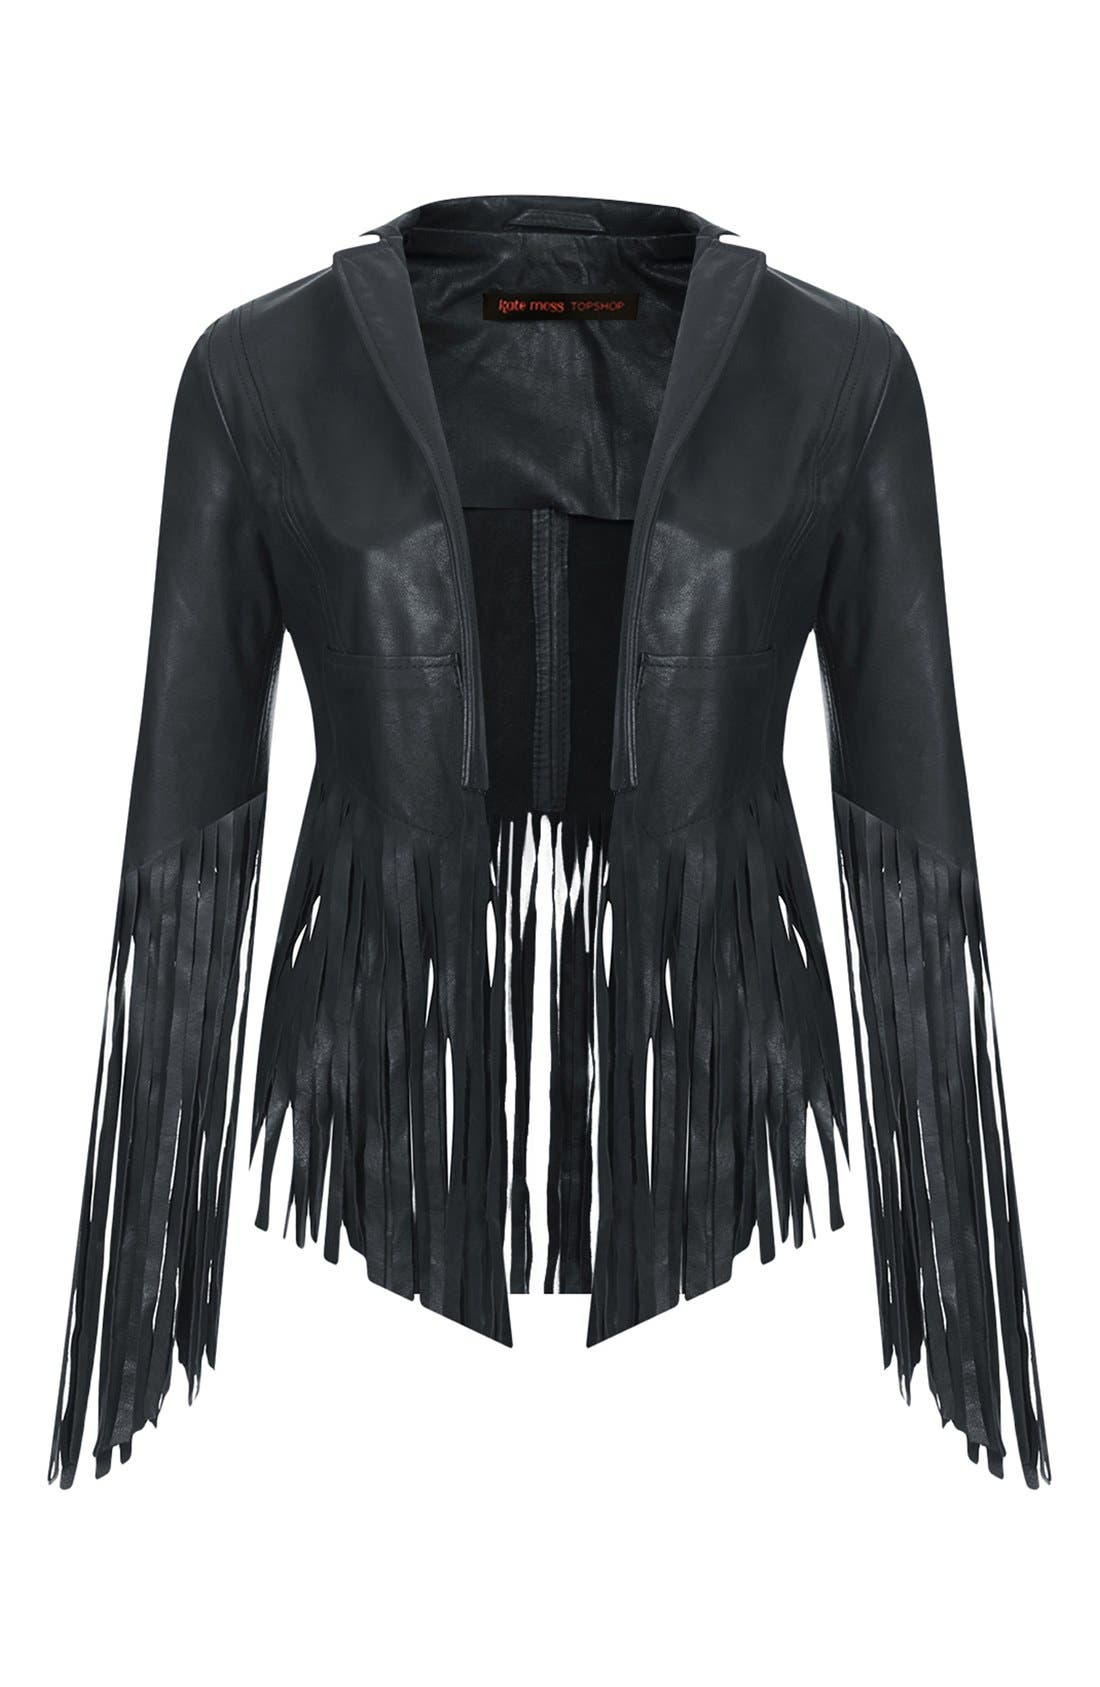 Alternate Image 3  - Kate Moss for Topshop Fringed Leather Jacket